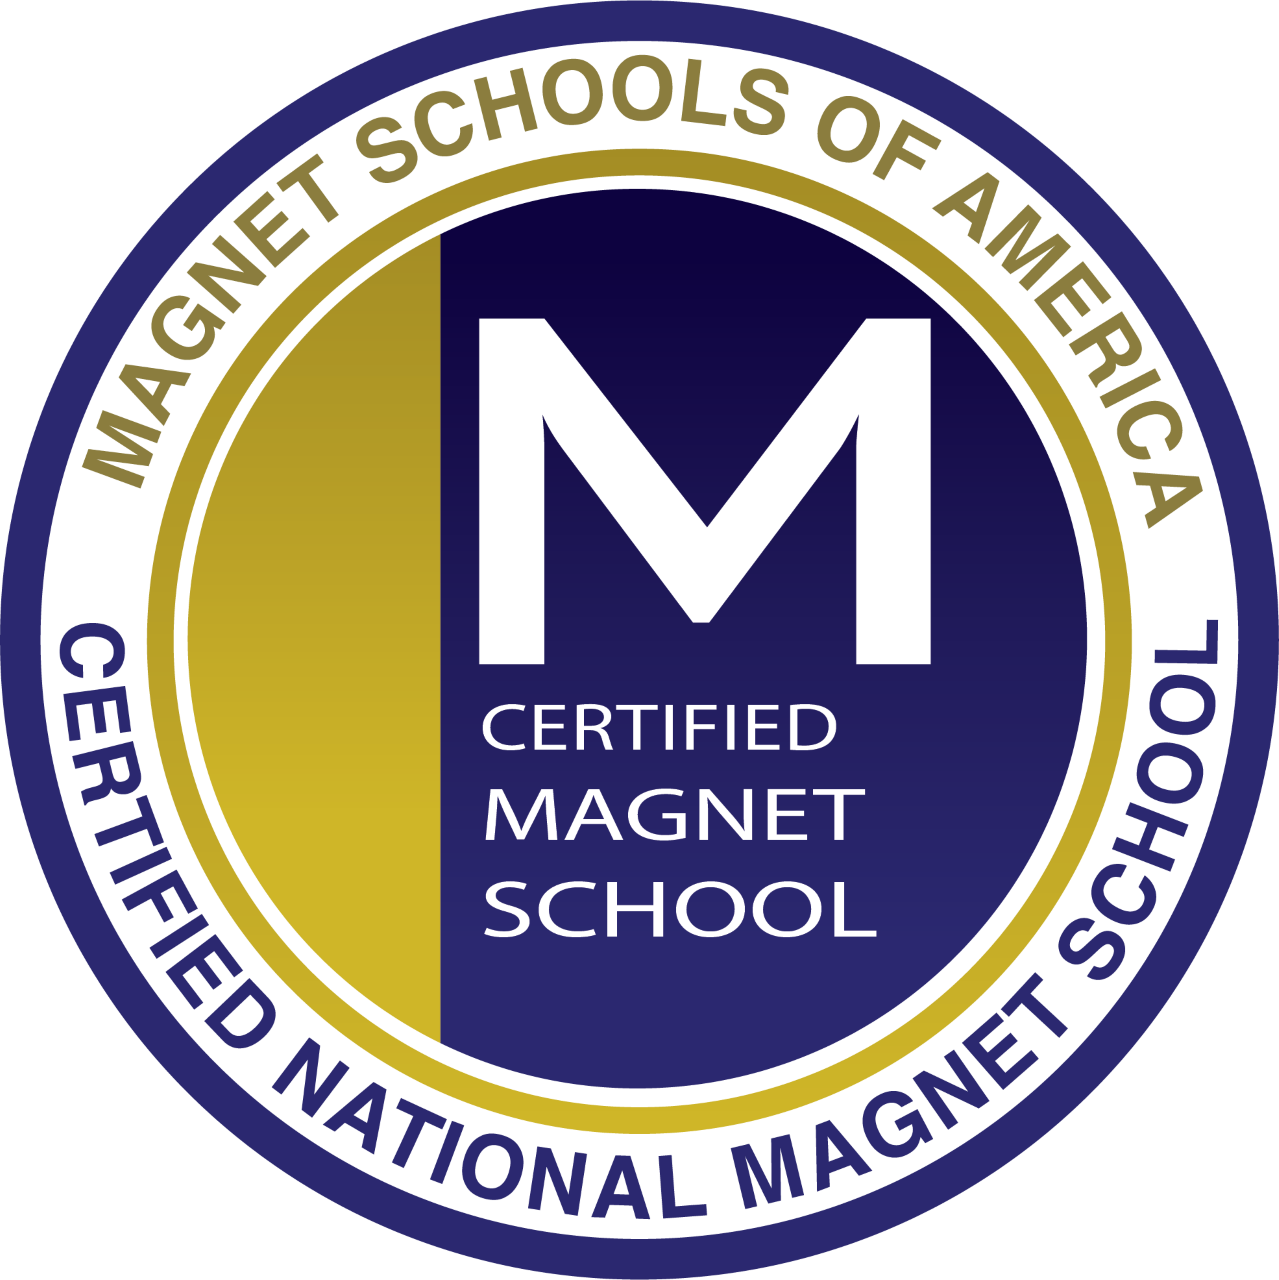 MSA Certified Magnet School